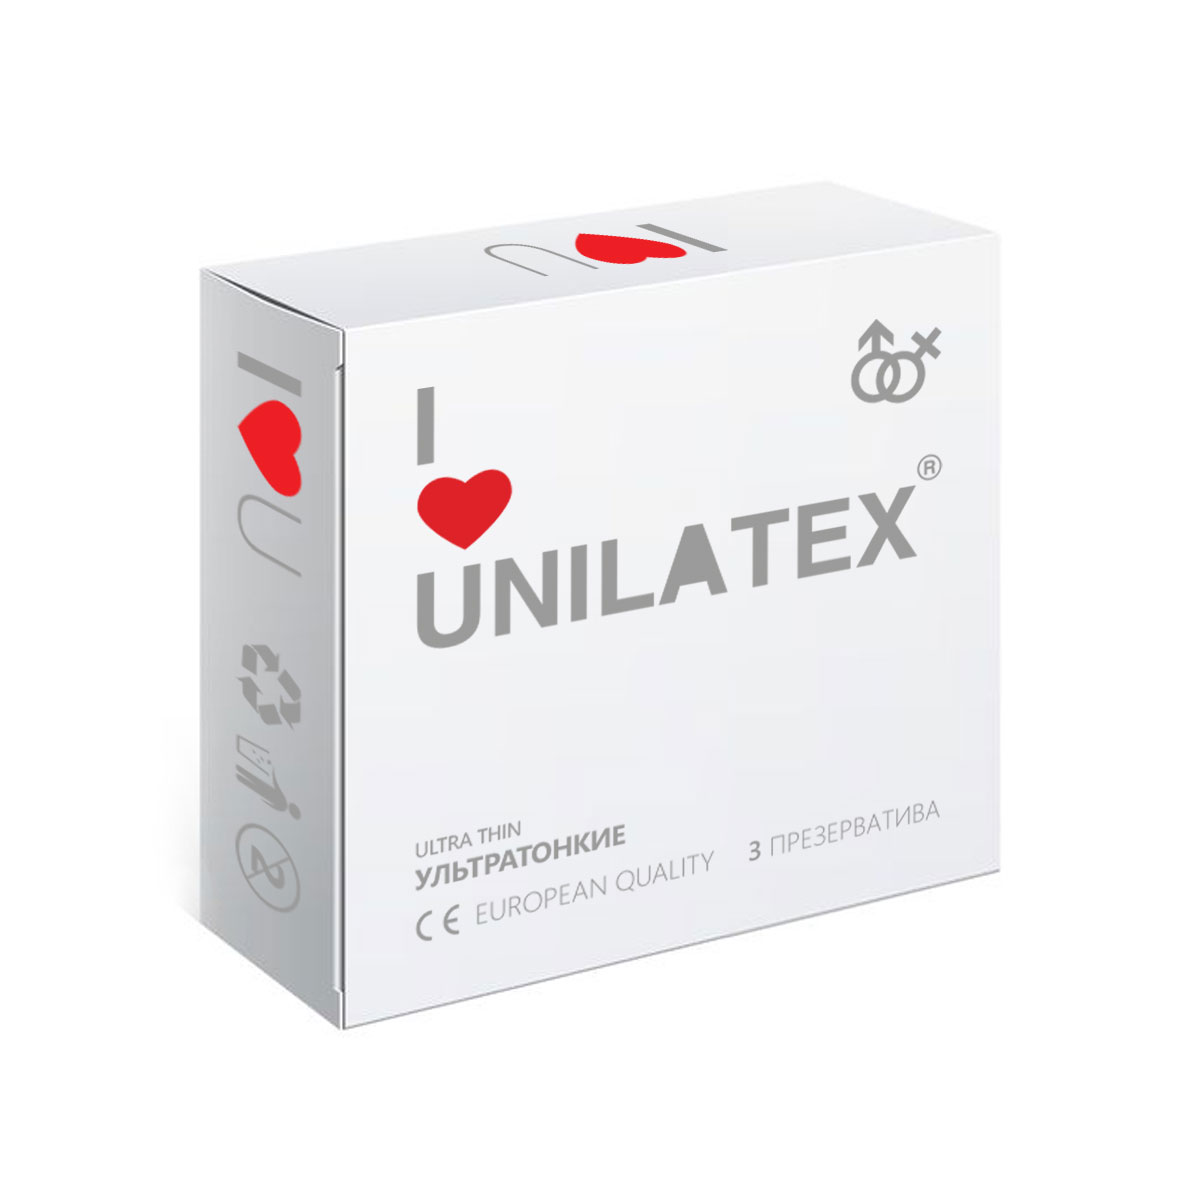 Презервативы Unilatex UltraThin, 3 шт fashion secret tania panties open белые юбки